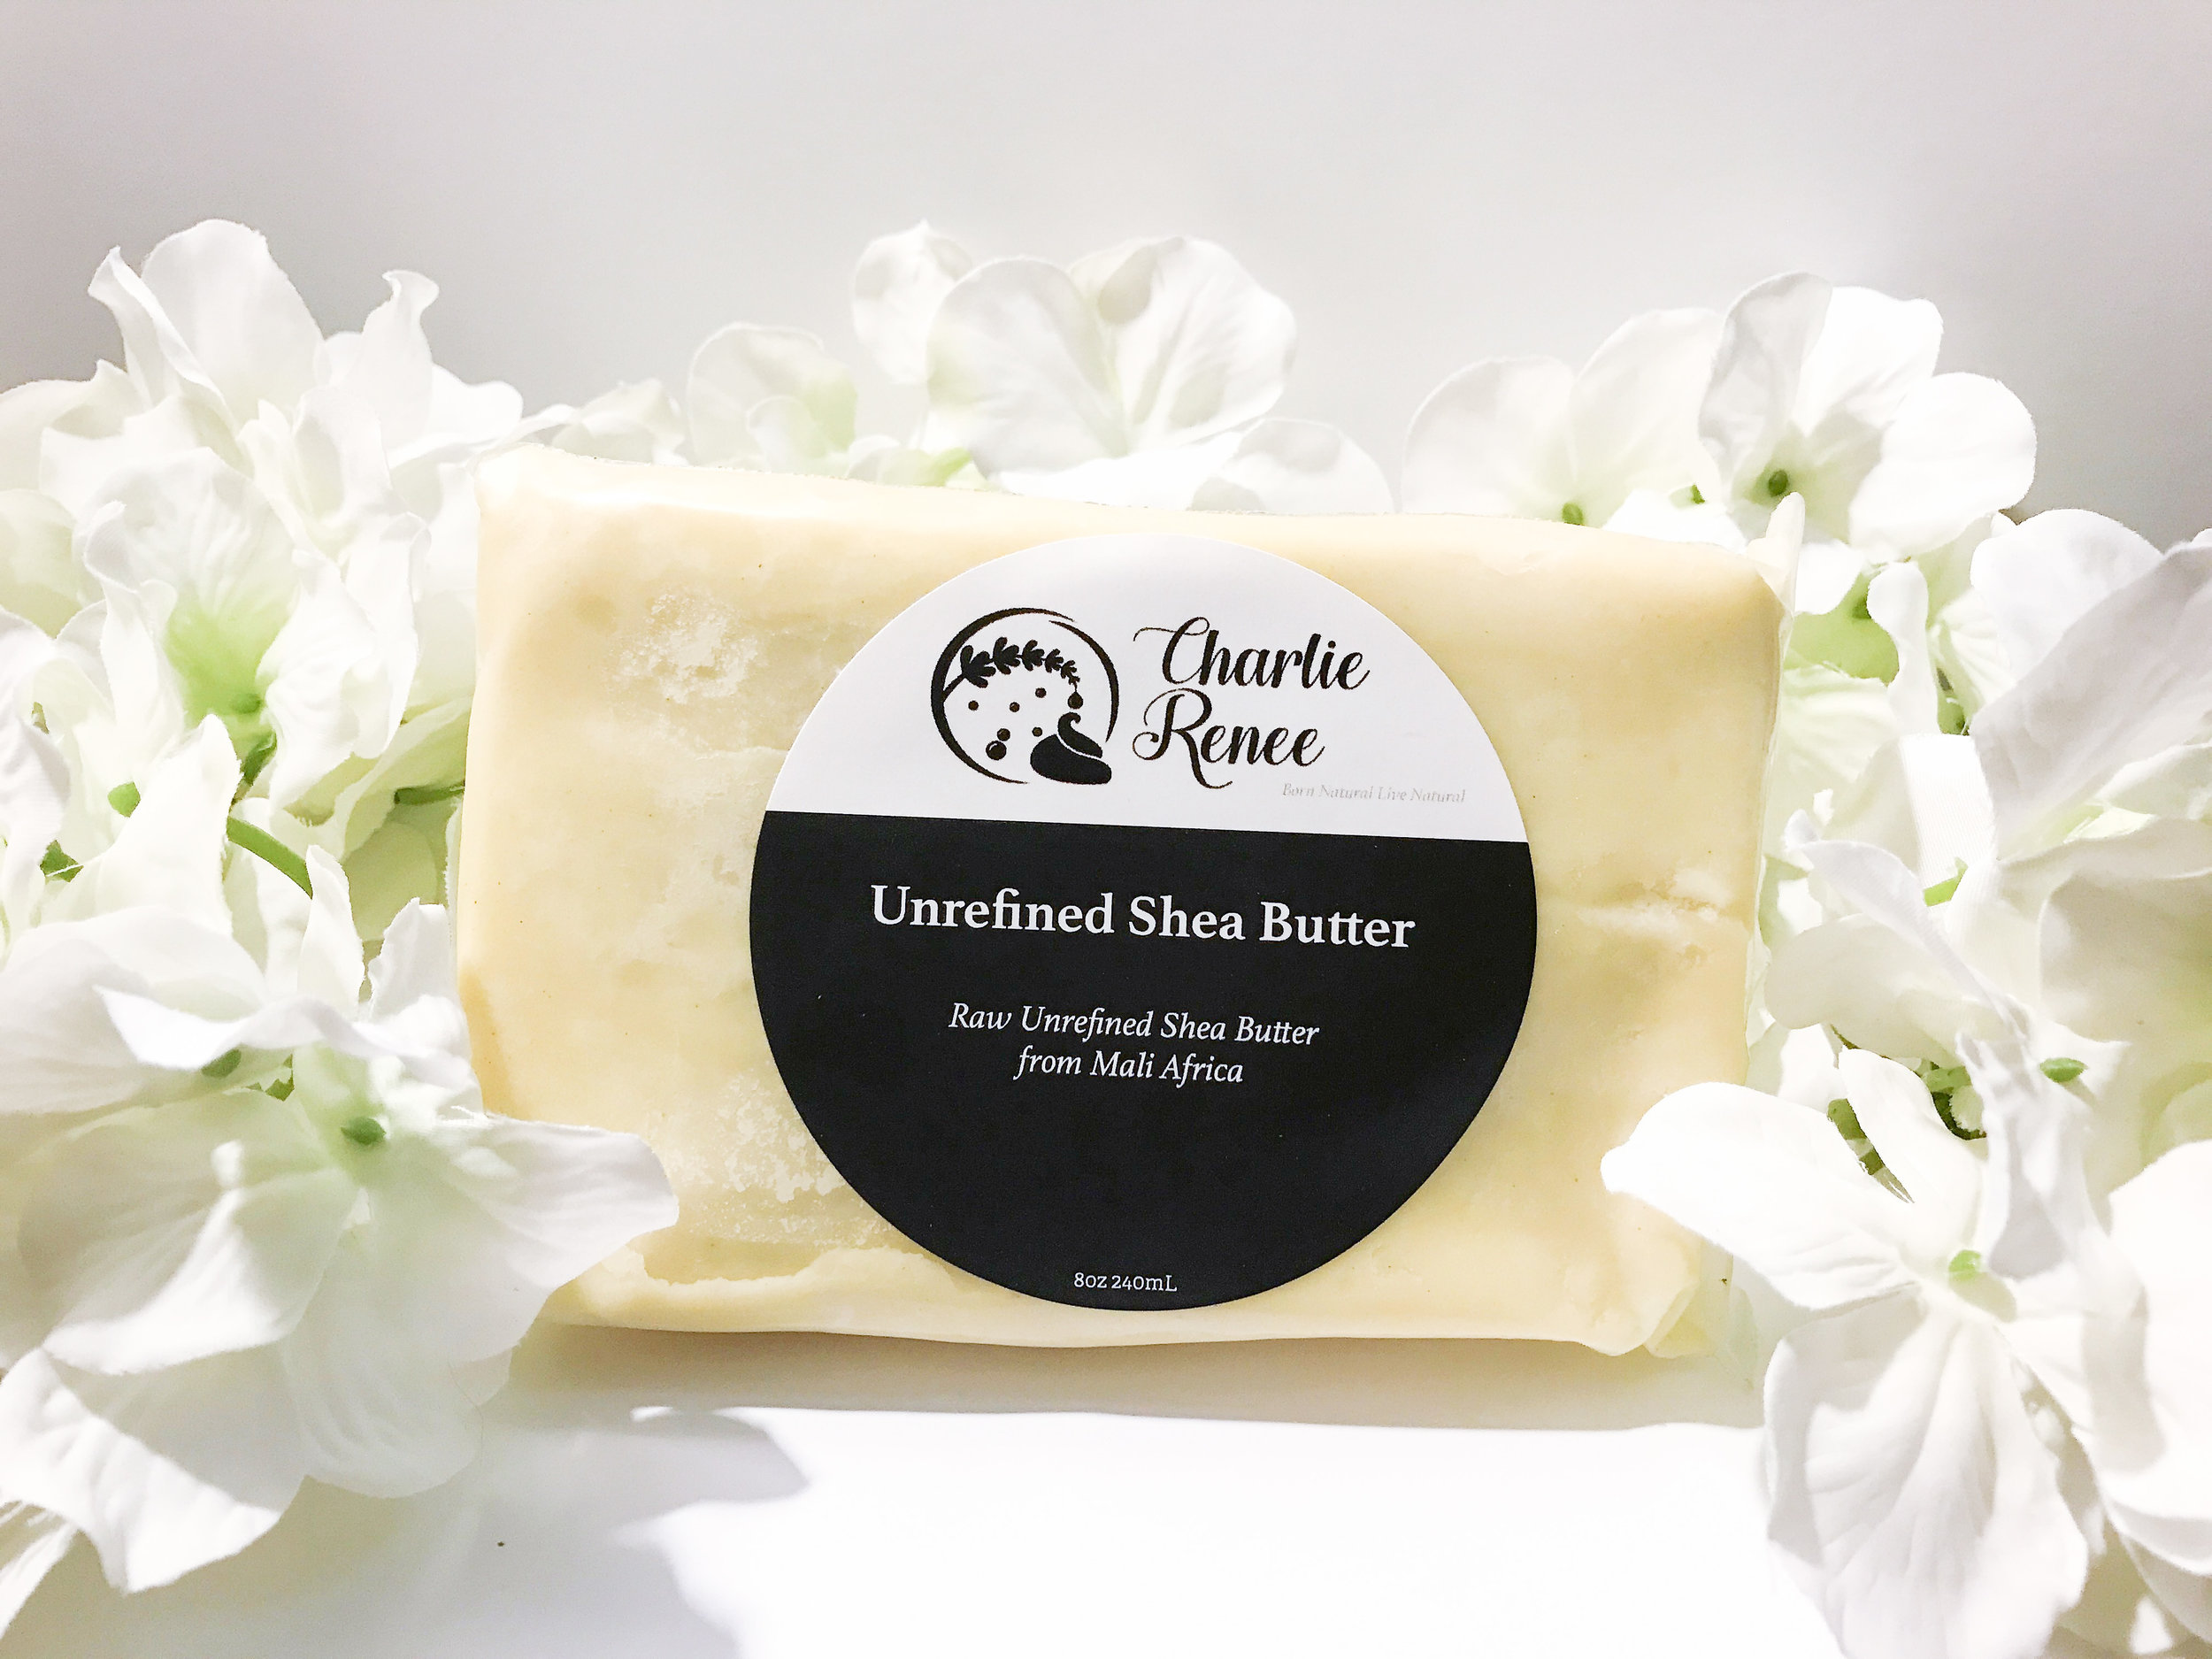 uNREFINED sHEA bUTTER - This product is 100% pure shea from the Mali shea trees which grow in sub-Saharan Africa. The Mali shea tree grows in a different climate of the known shea butter region of Ghana.  The origins of the shea nut produces a creamier shea butter with a reduced aroma.   Our shea butter  is prepared with a small amount of lime juice. The lime juice acts as a natural preservative to provide a longer shelf life.  With proper storage, this creamy unrefined shea butter should last you 2 years.